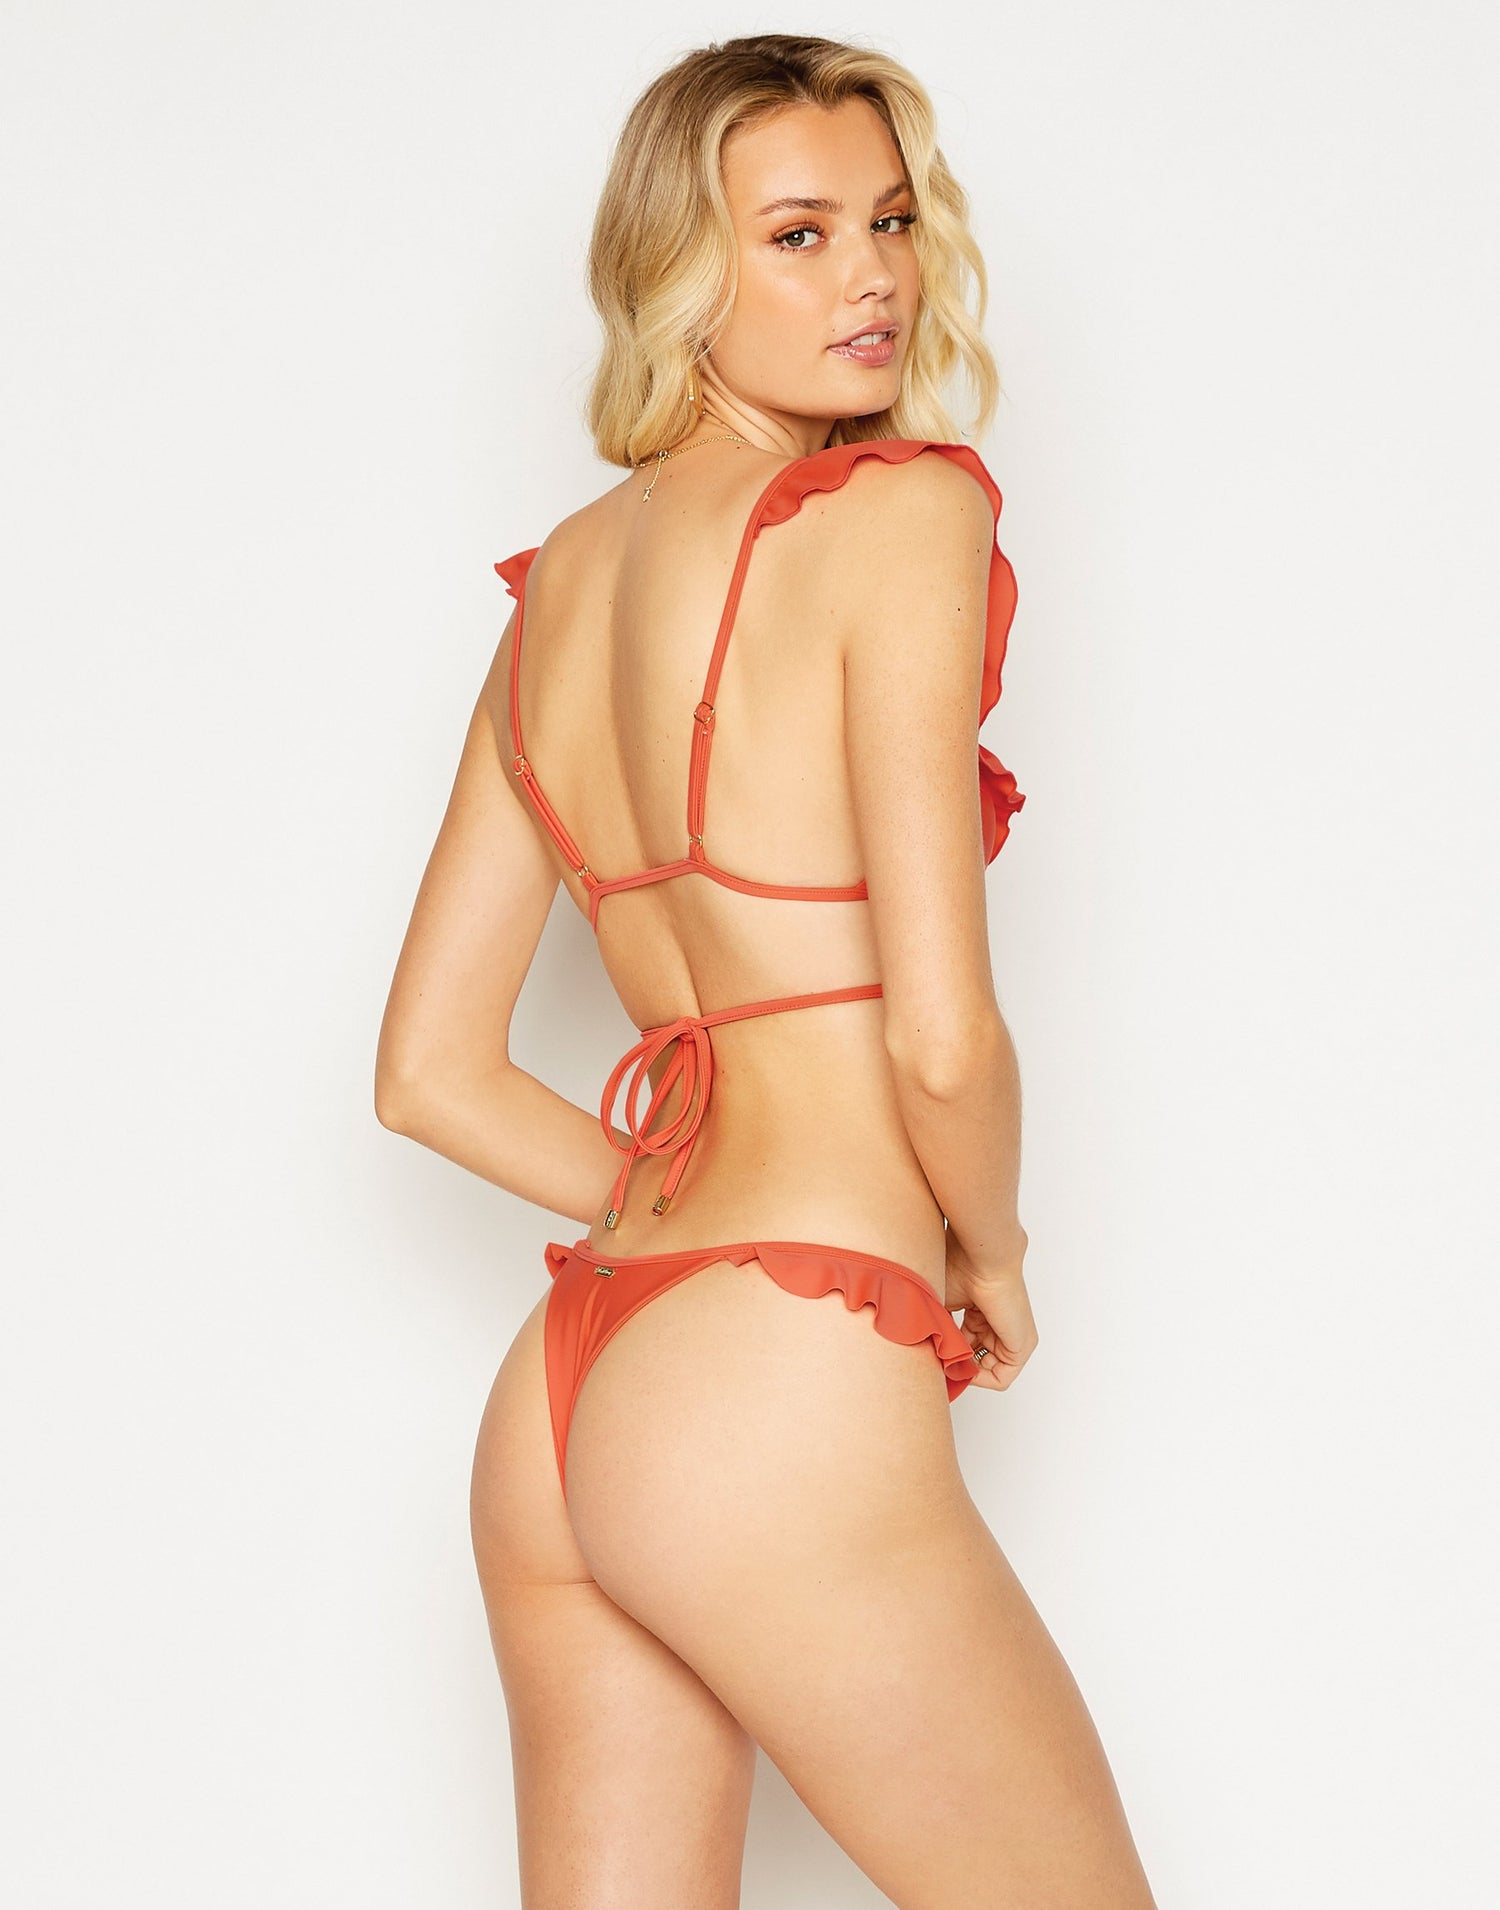 Scarlette Brazilian Bikini Bottom in Poppy Red with Ruffle Detail - back view